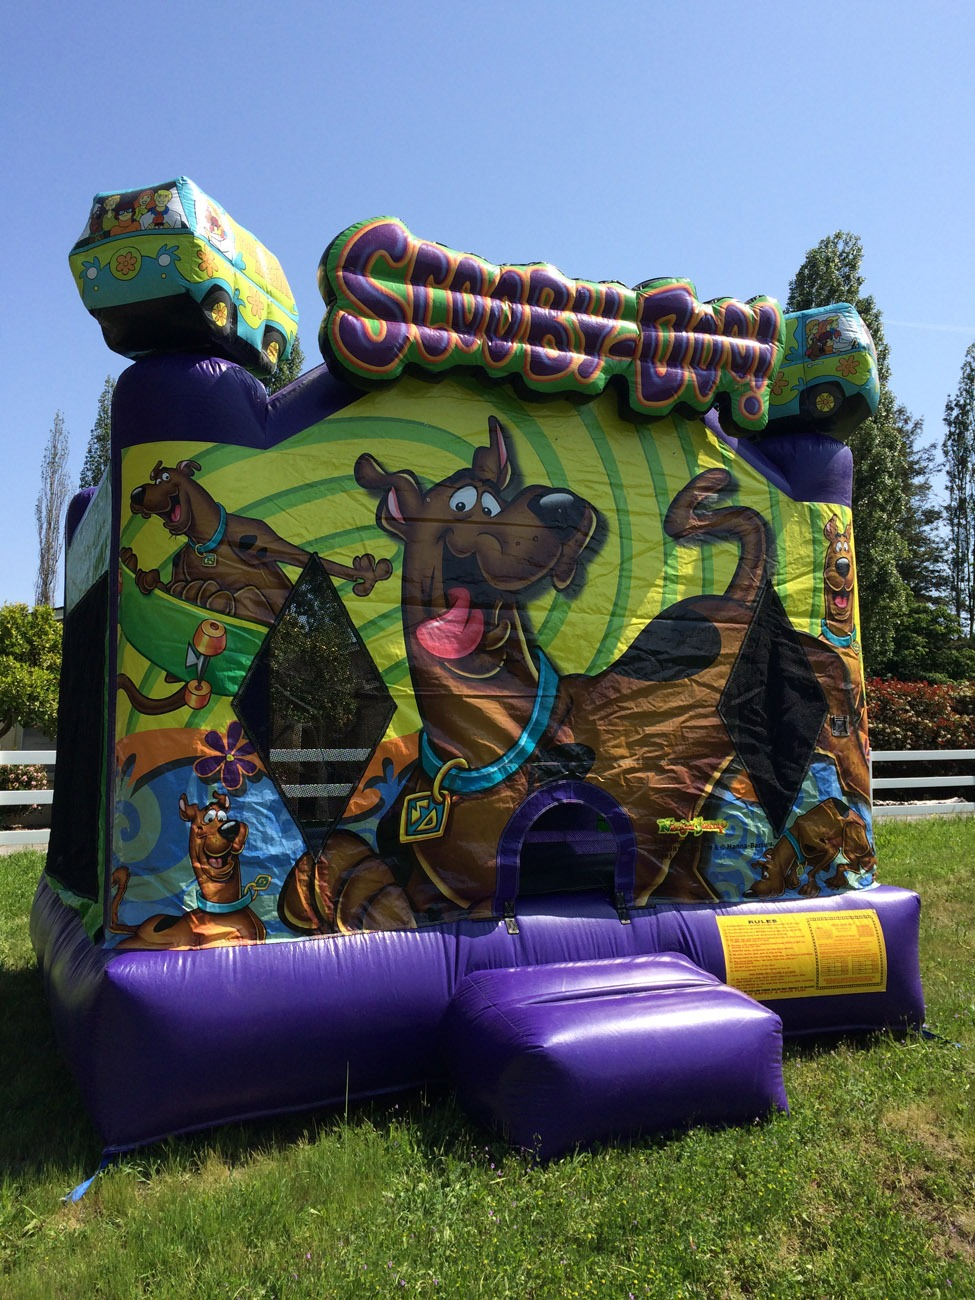 Racing Games For Boys >> Scooby Doo Inflatable Bouncer - Lets Party